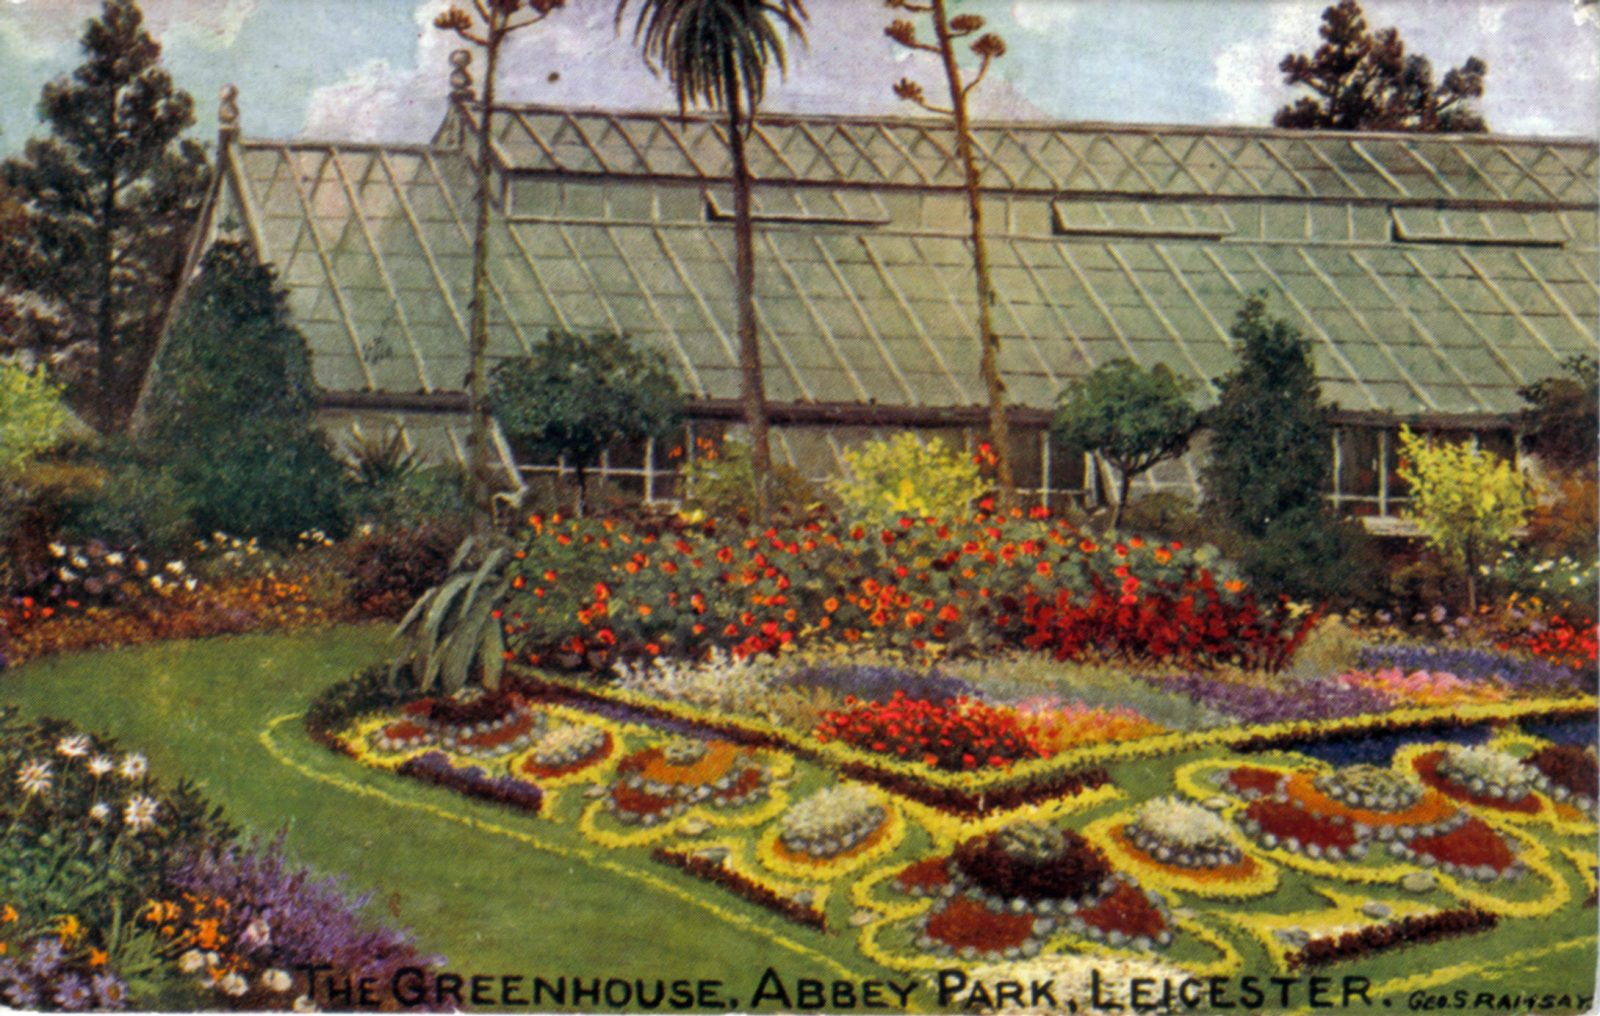 Abbey Park, Leicester. 1901-1920: The greenhouse with carpet bedding. Taken from an oil painting by Geo. S. Ramsey. Franked 1908 (File:1020)